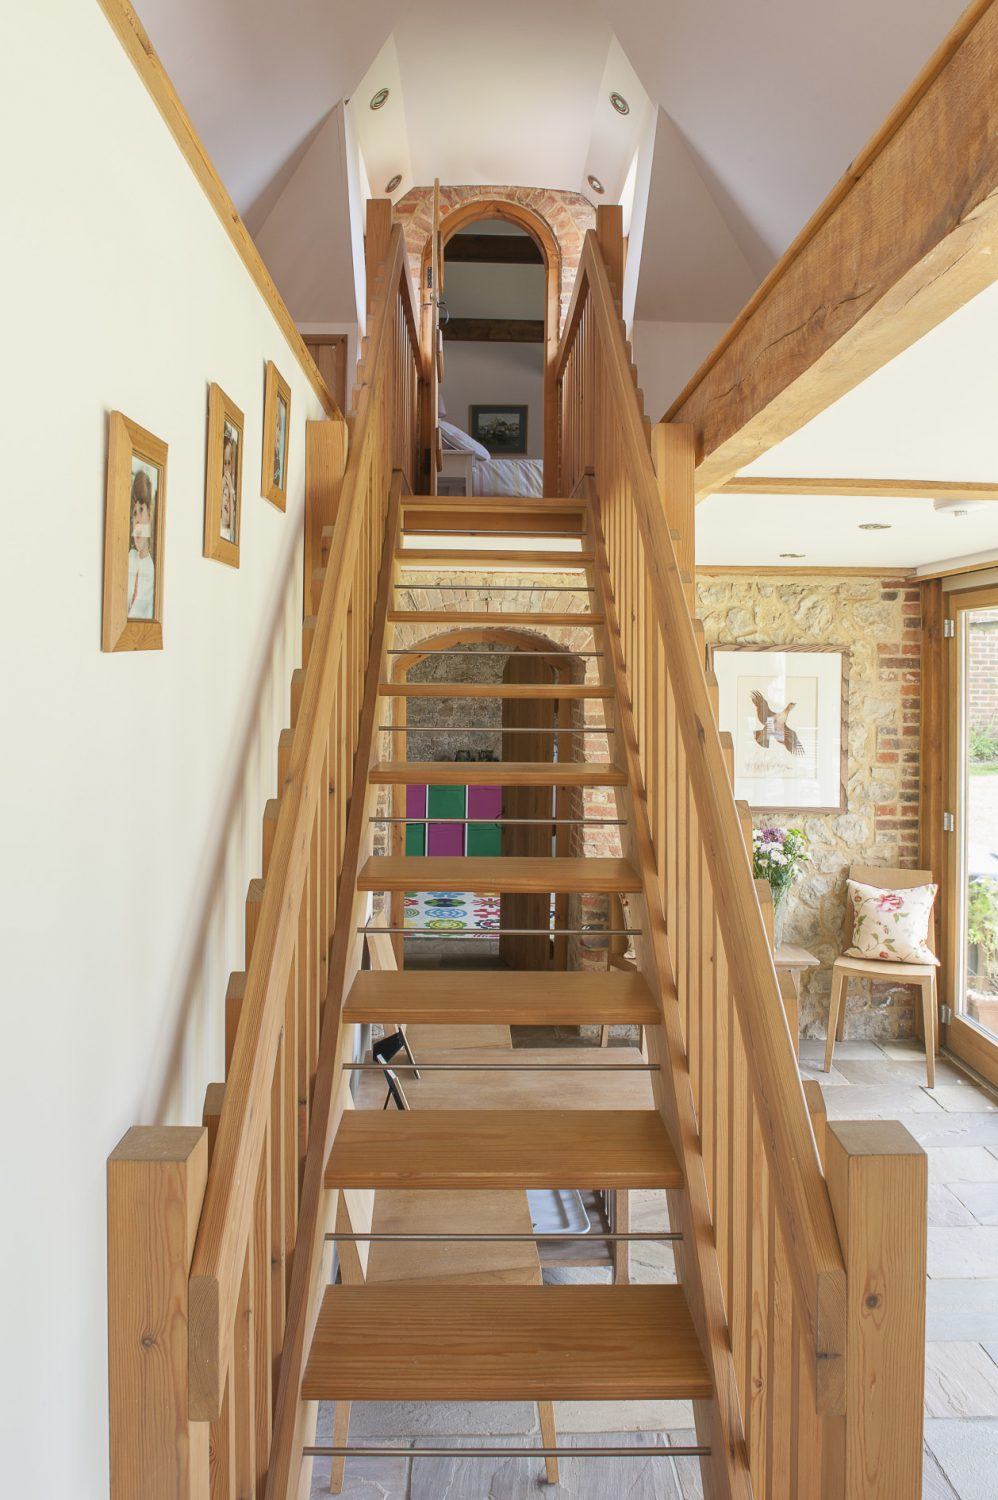 At one end of the kitchen, a staircase leads to the guest bedroom and en suite shower room